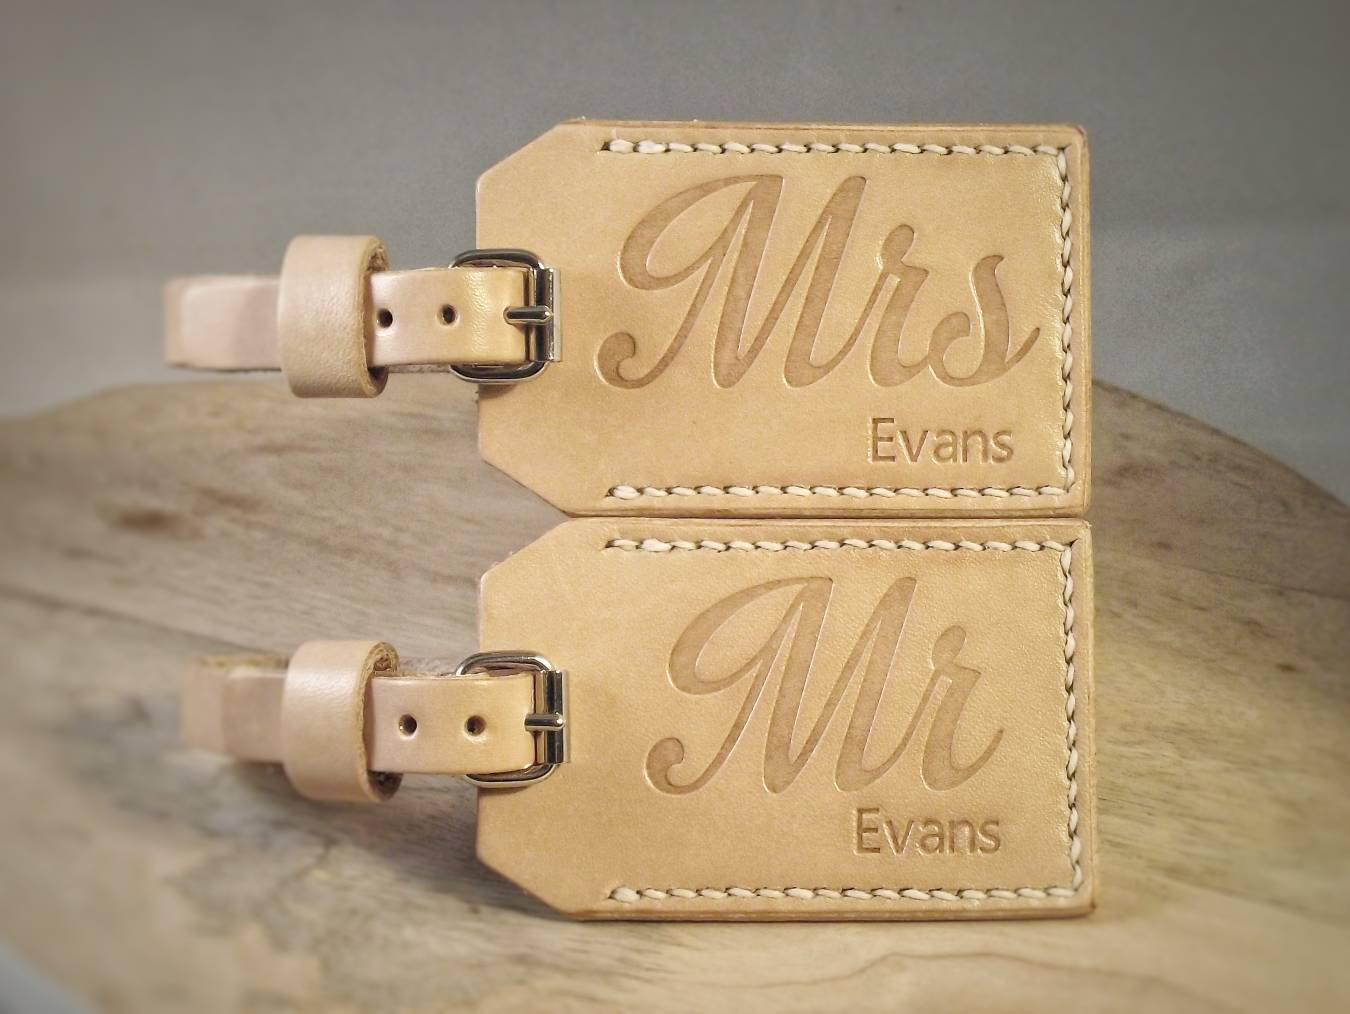 Personalized Leather Luggage Tag Mr & Mrs, Premium Bag For Wedding Gift, Anniversary 3rd Or Honeymoon